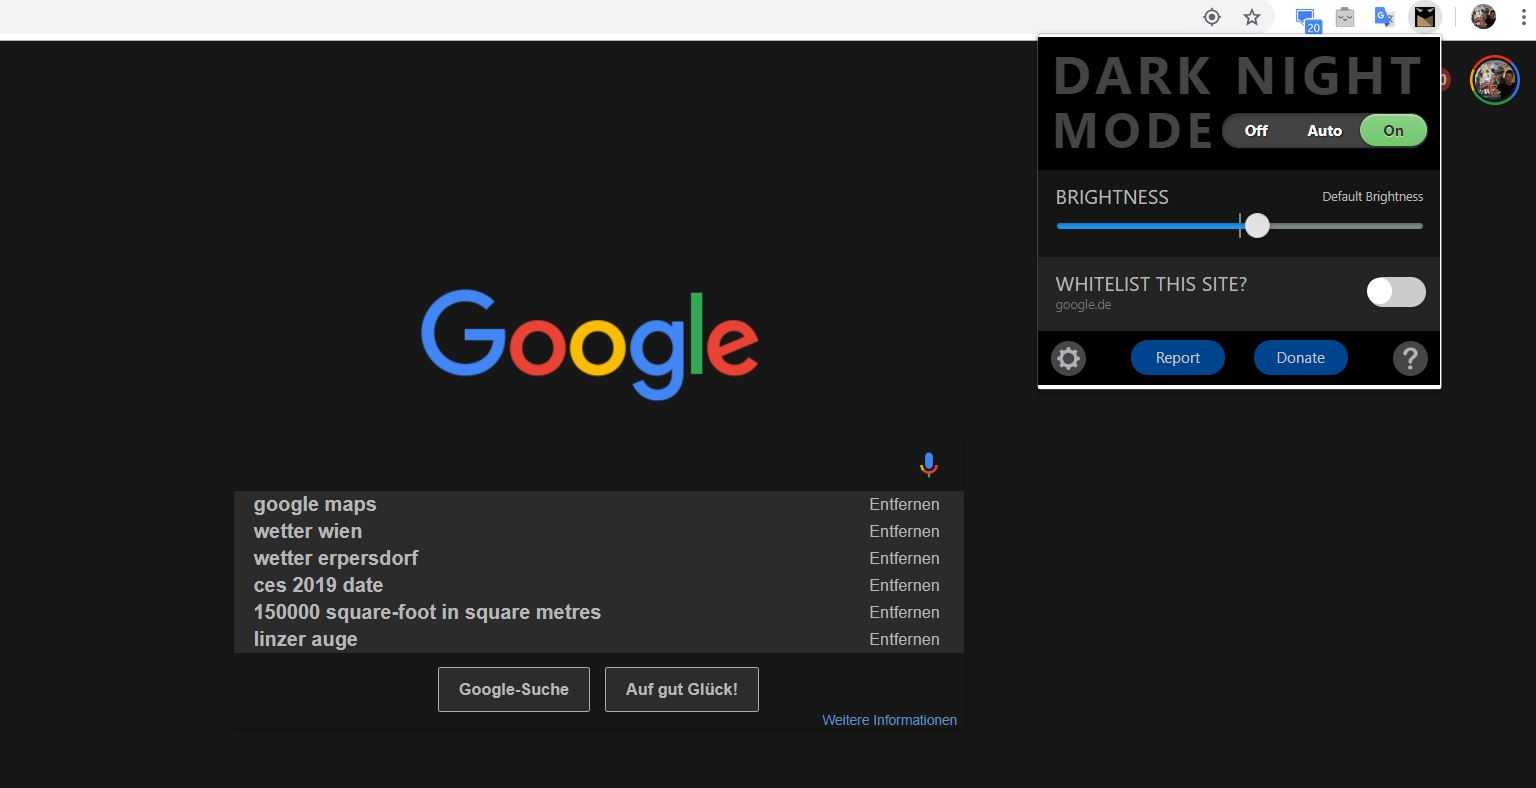 chrome extension dark night mode